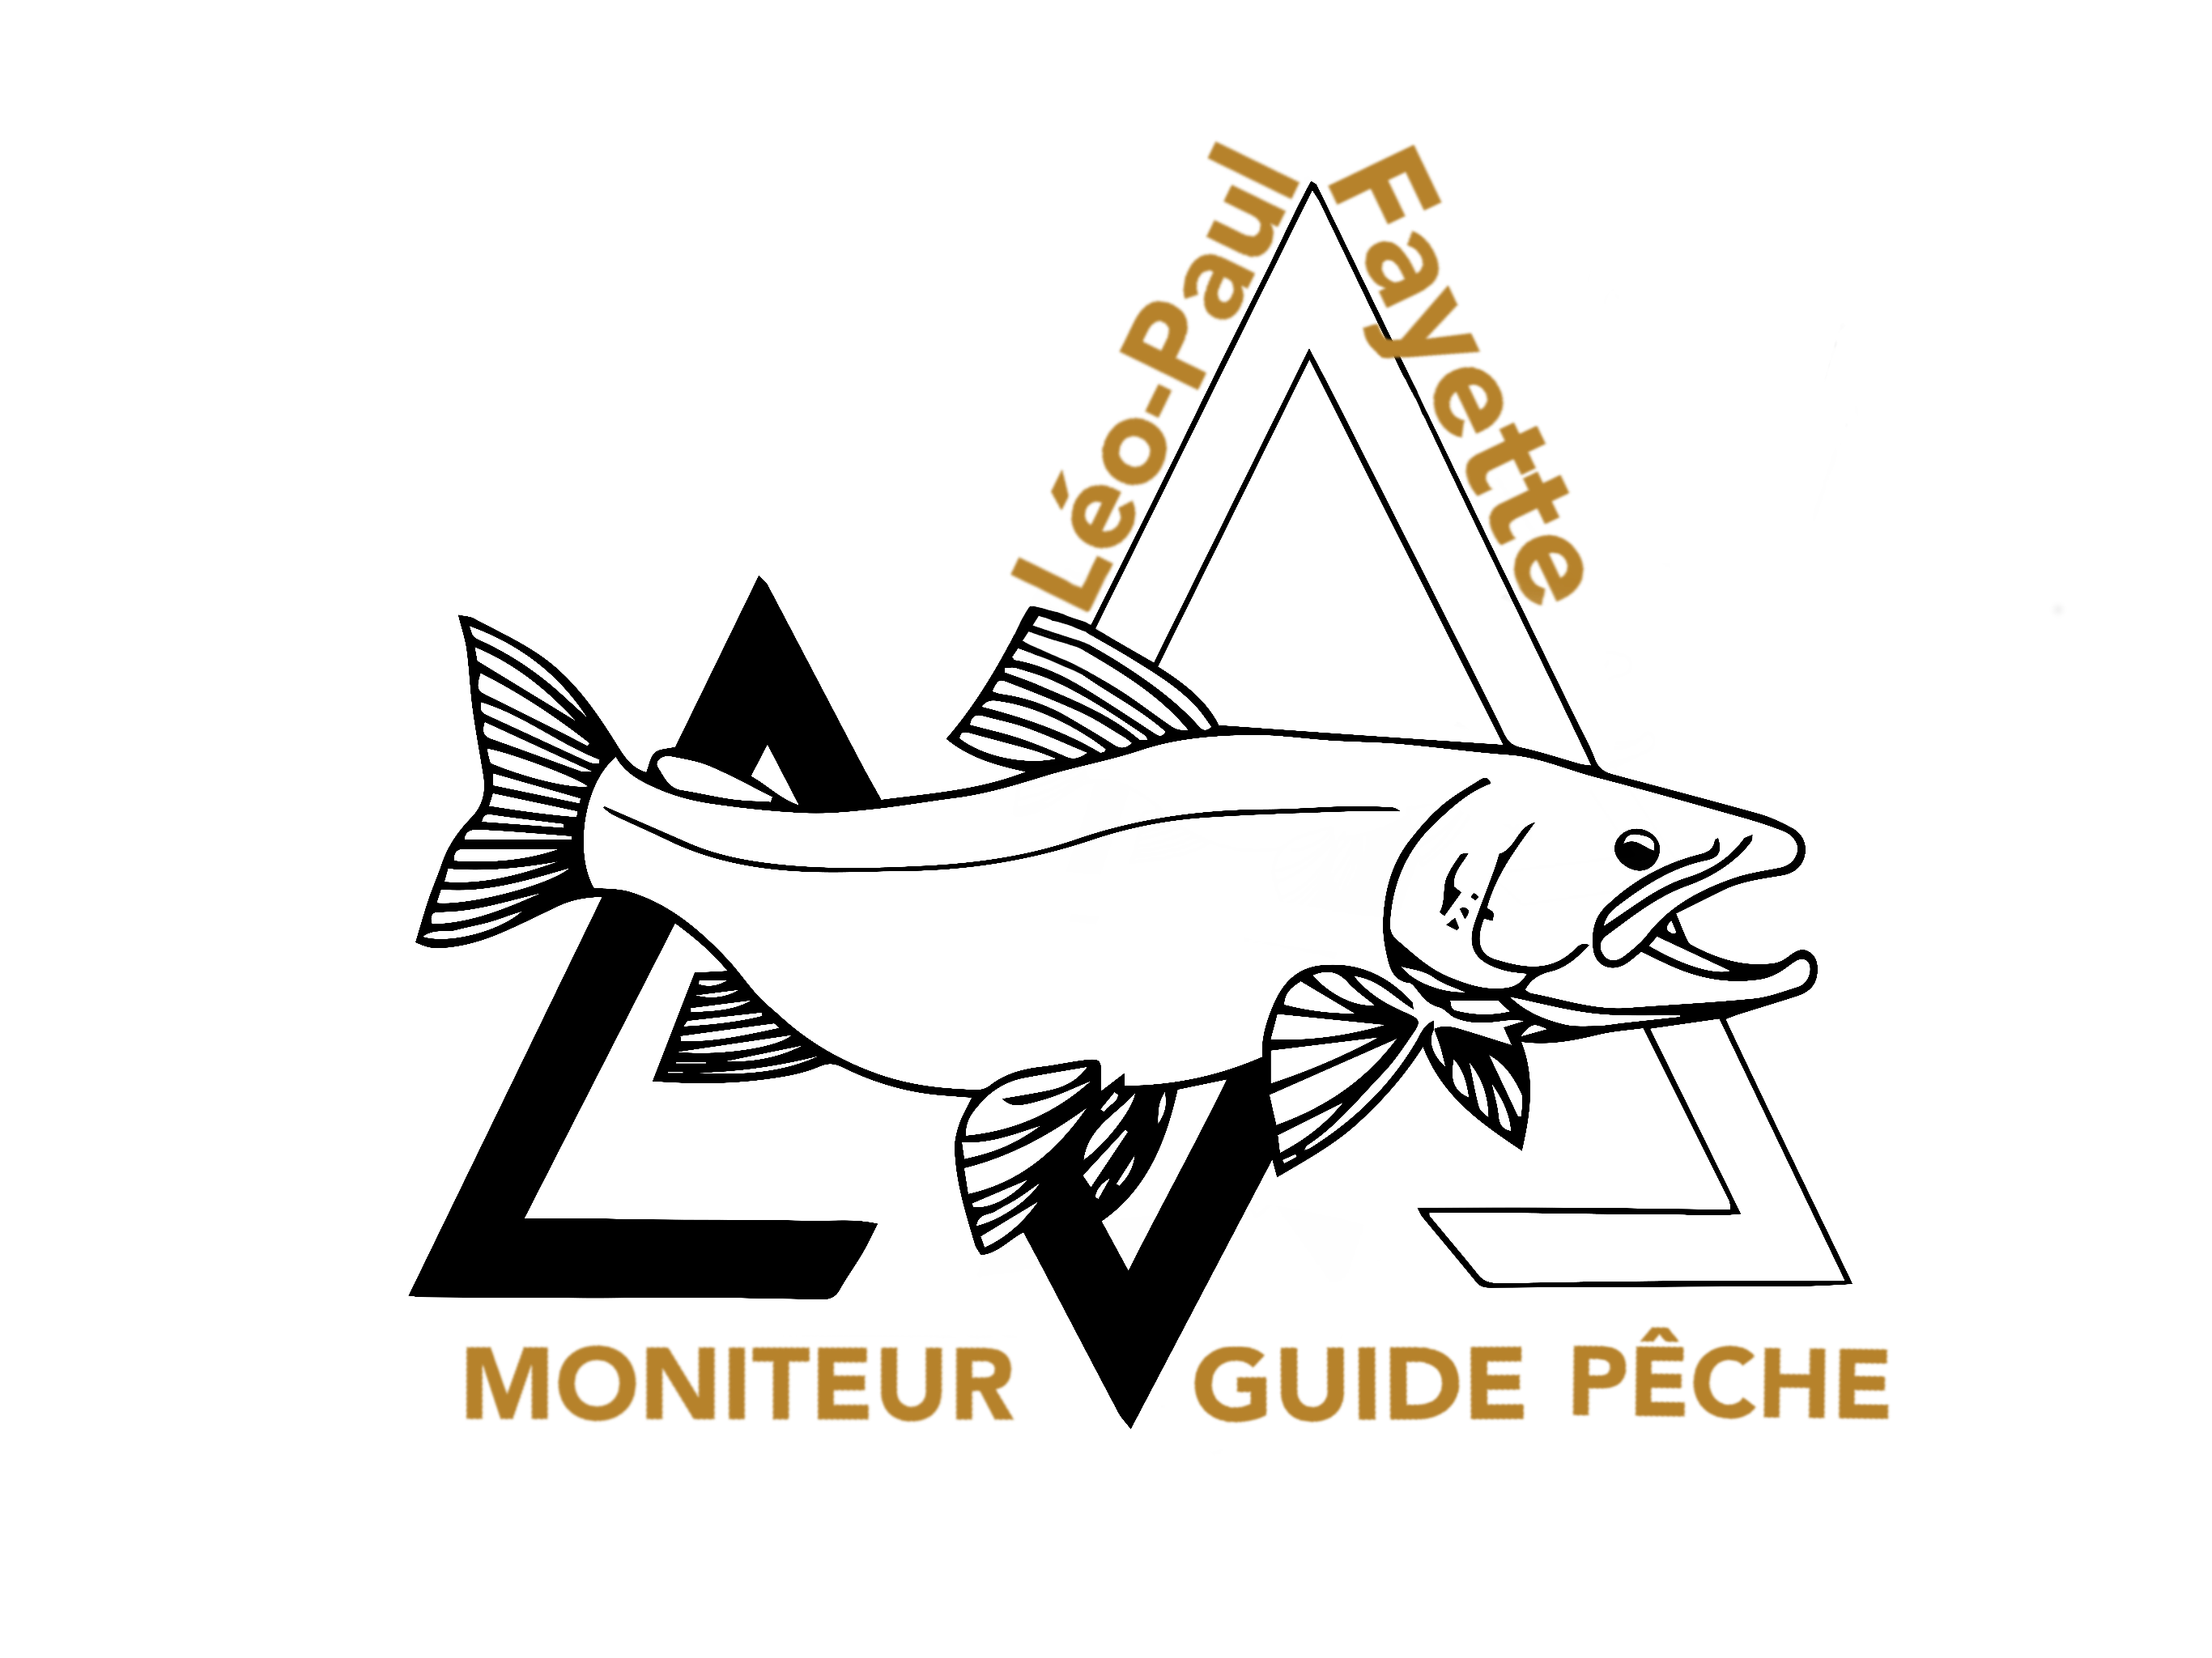 Léo-Paul Fayette Moniteur-Guide-Pêche